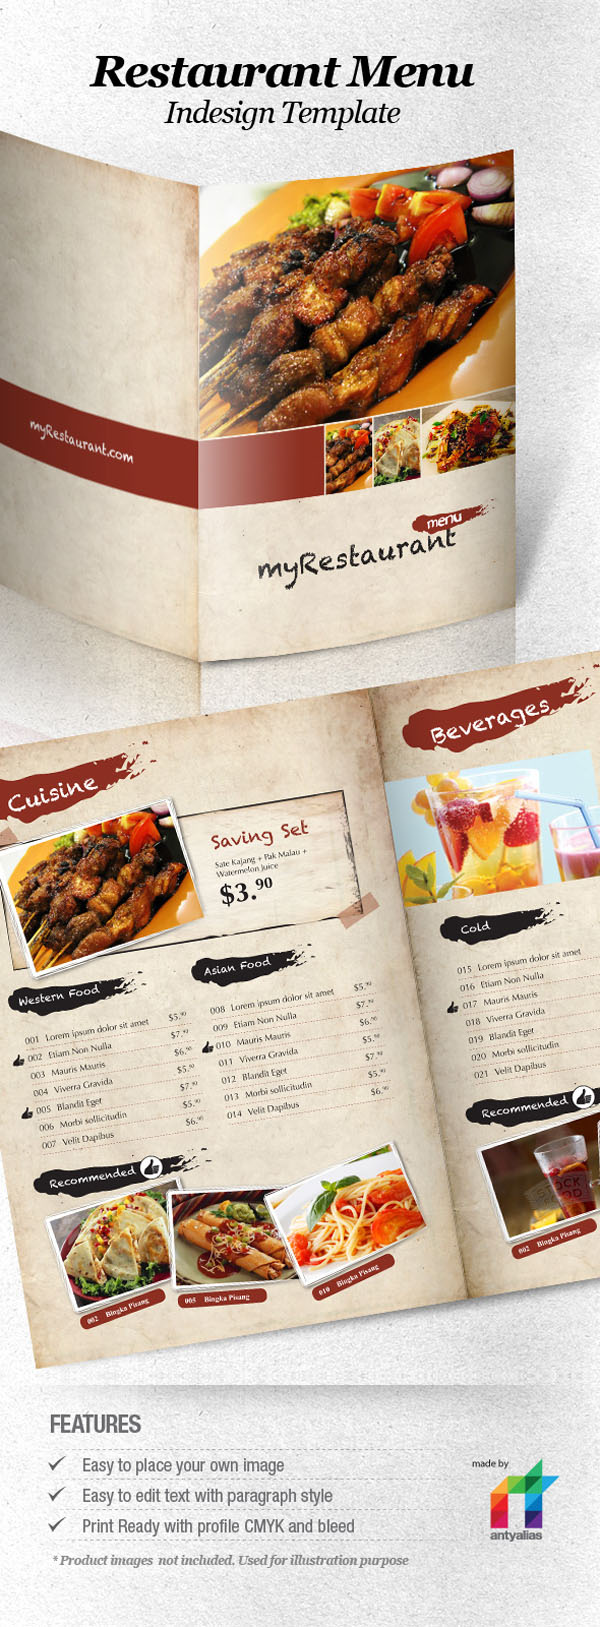 restaurant_menu_template_by_antyalias-d3gdfyl